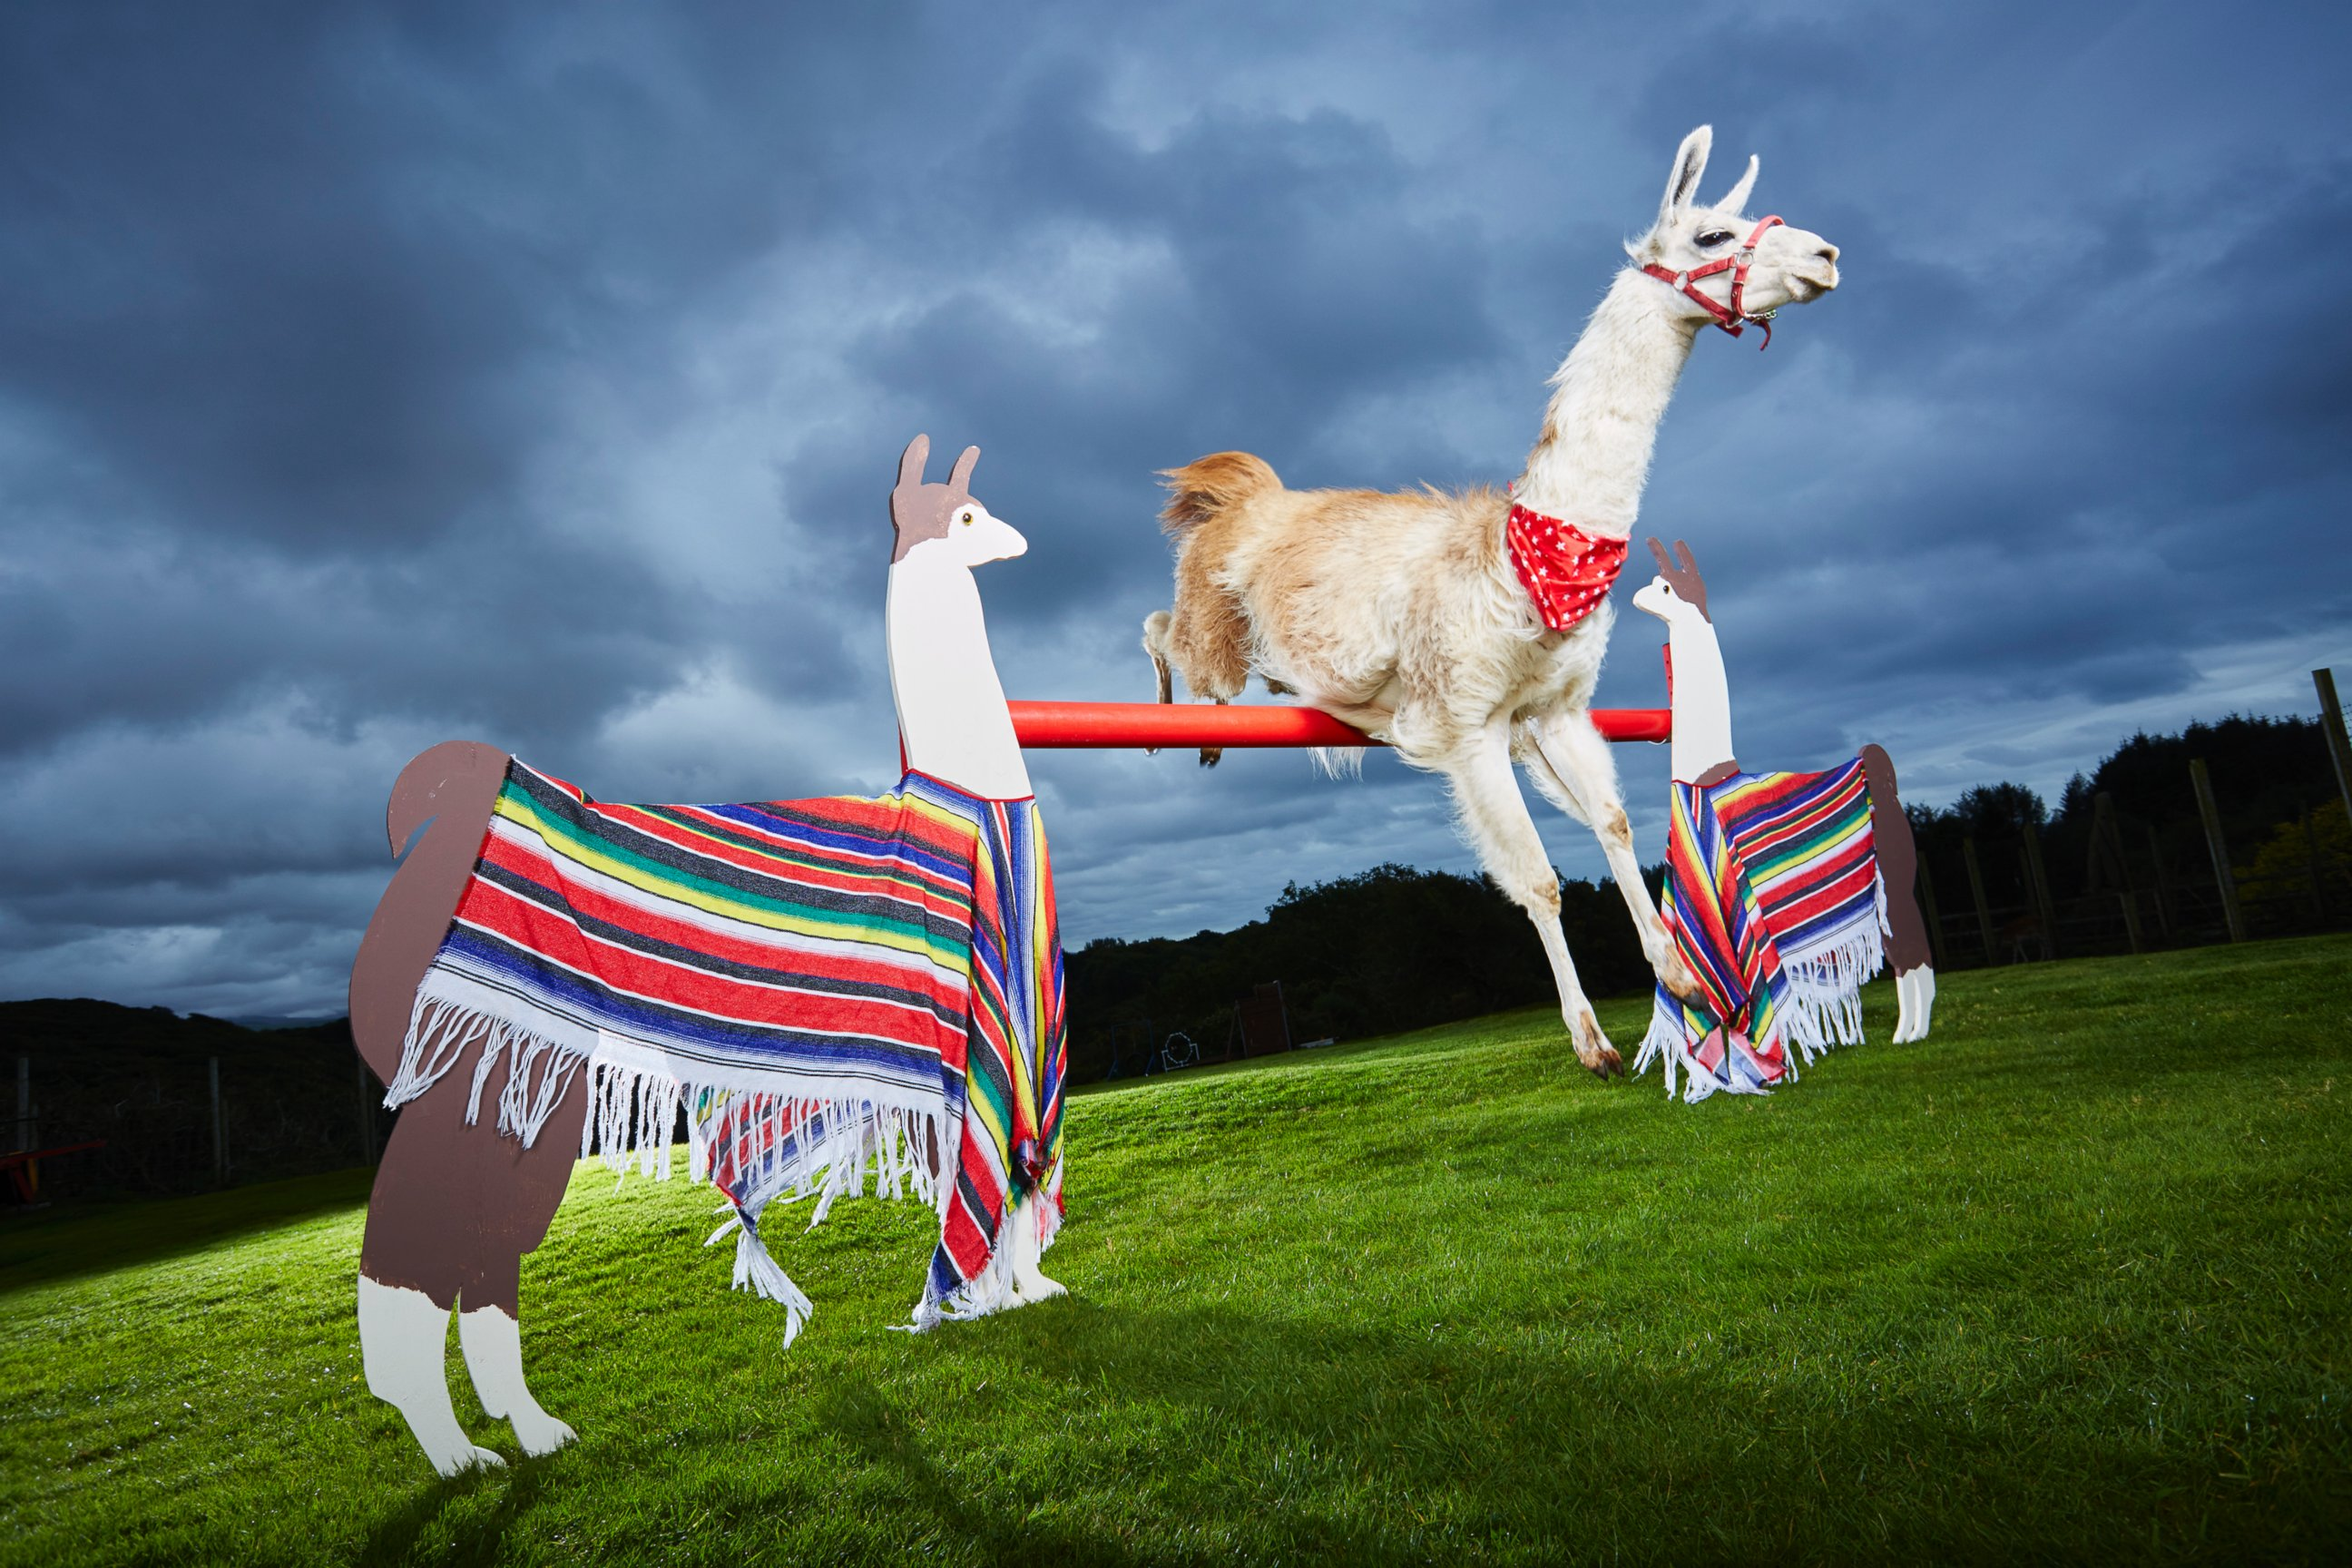 caspa the lama of porthmadog wales has entered the 2017 guinness book of world records for highest jump by a llama